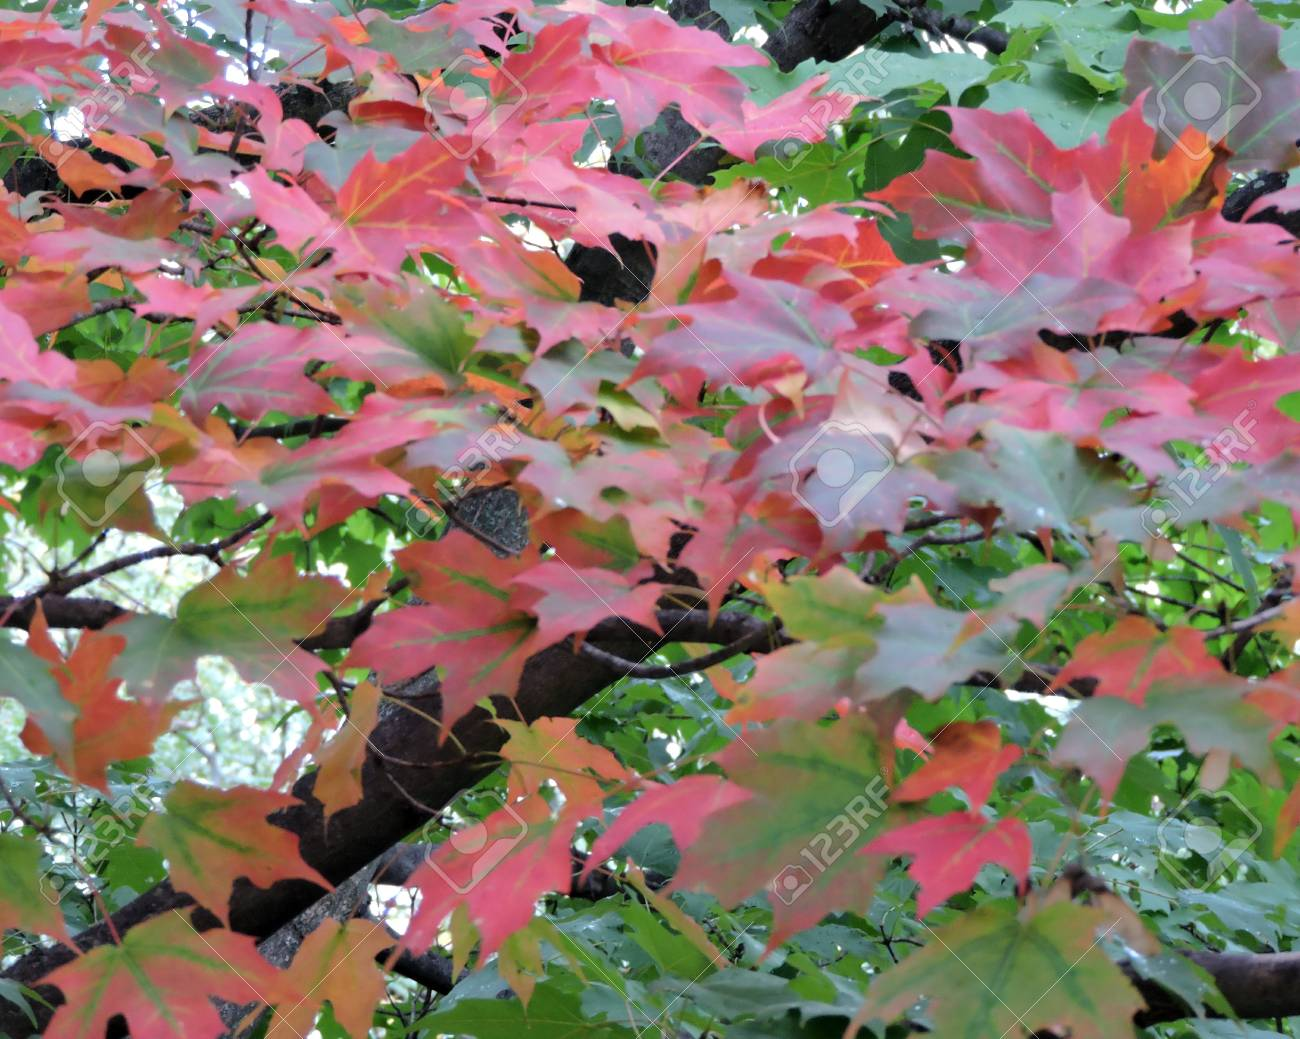 Autumn Maple Leaves Changing Color on Tree Stock Photo - 46781234